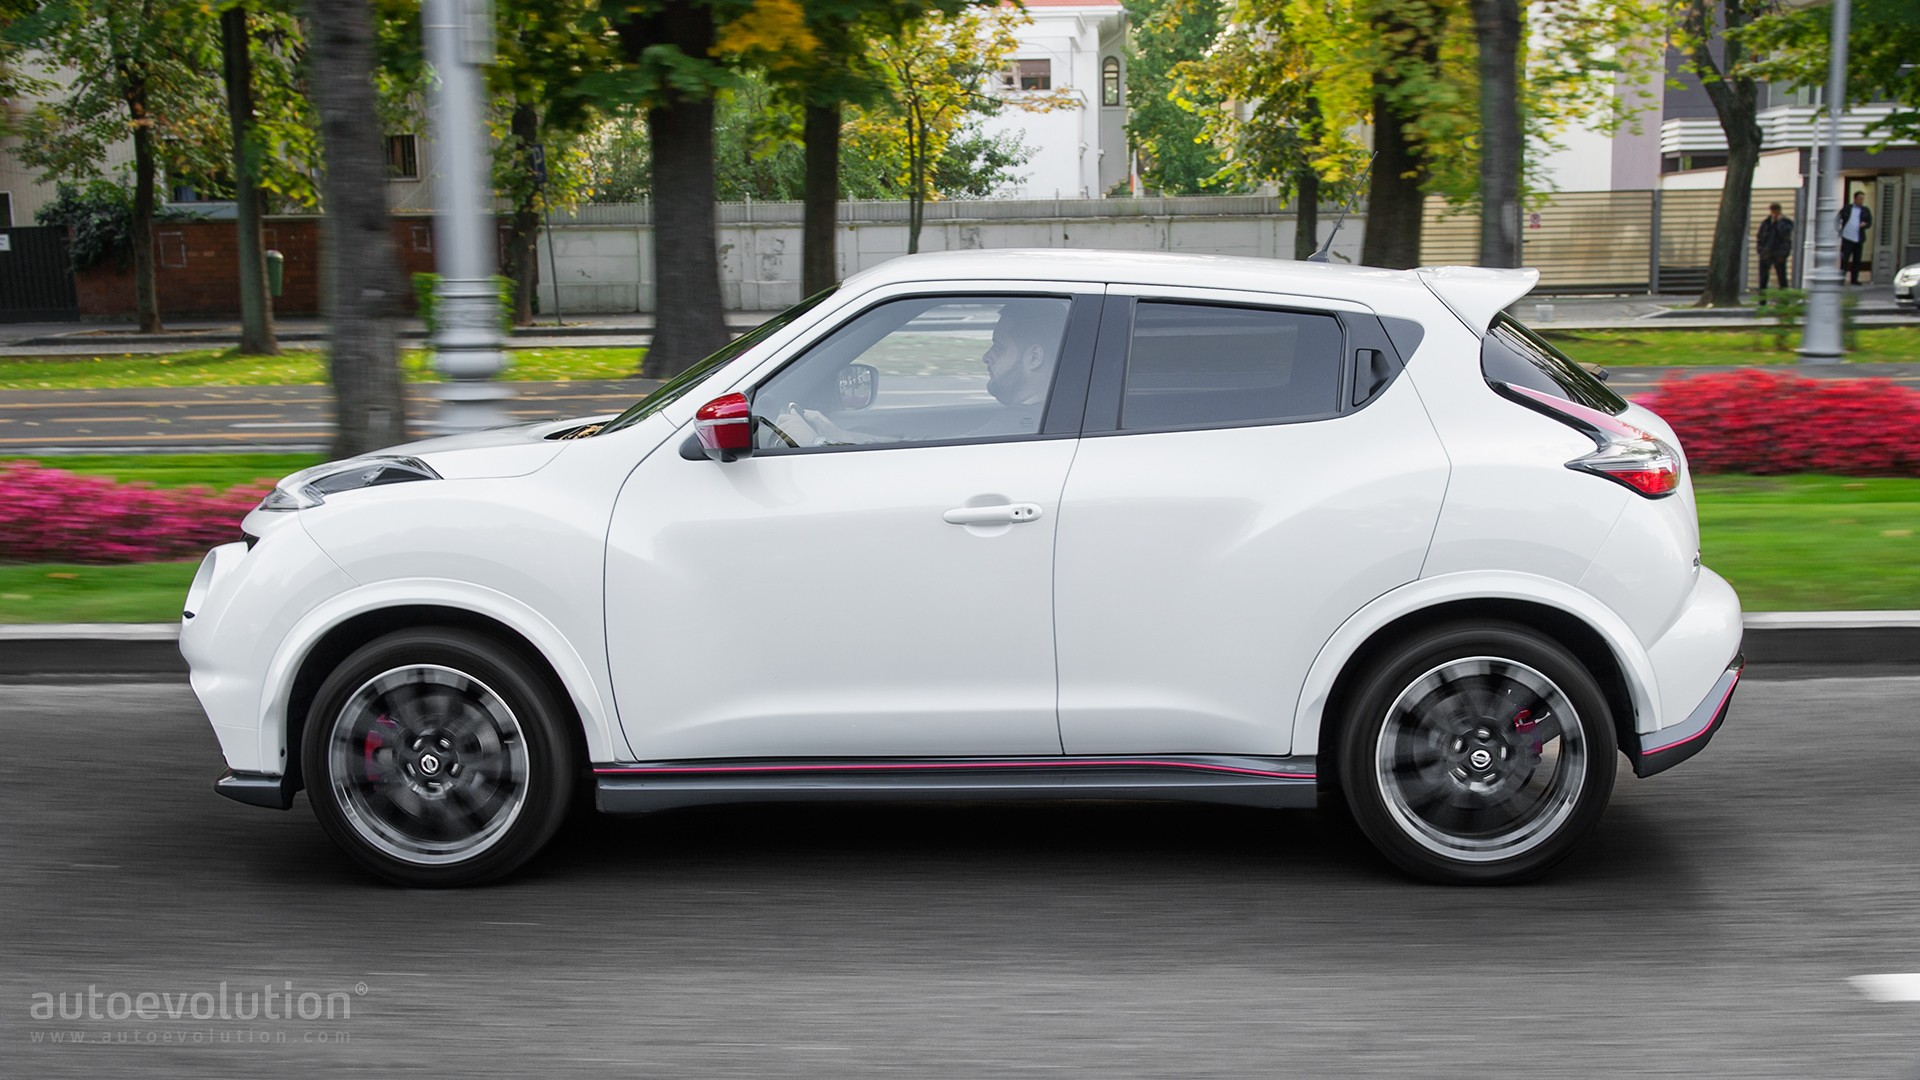 2016 Nissan Juke Nismo RS Review - autoevolution